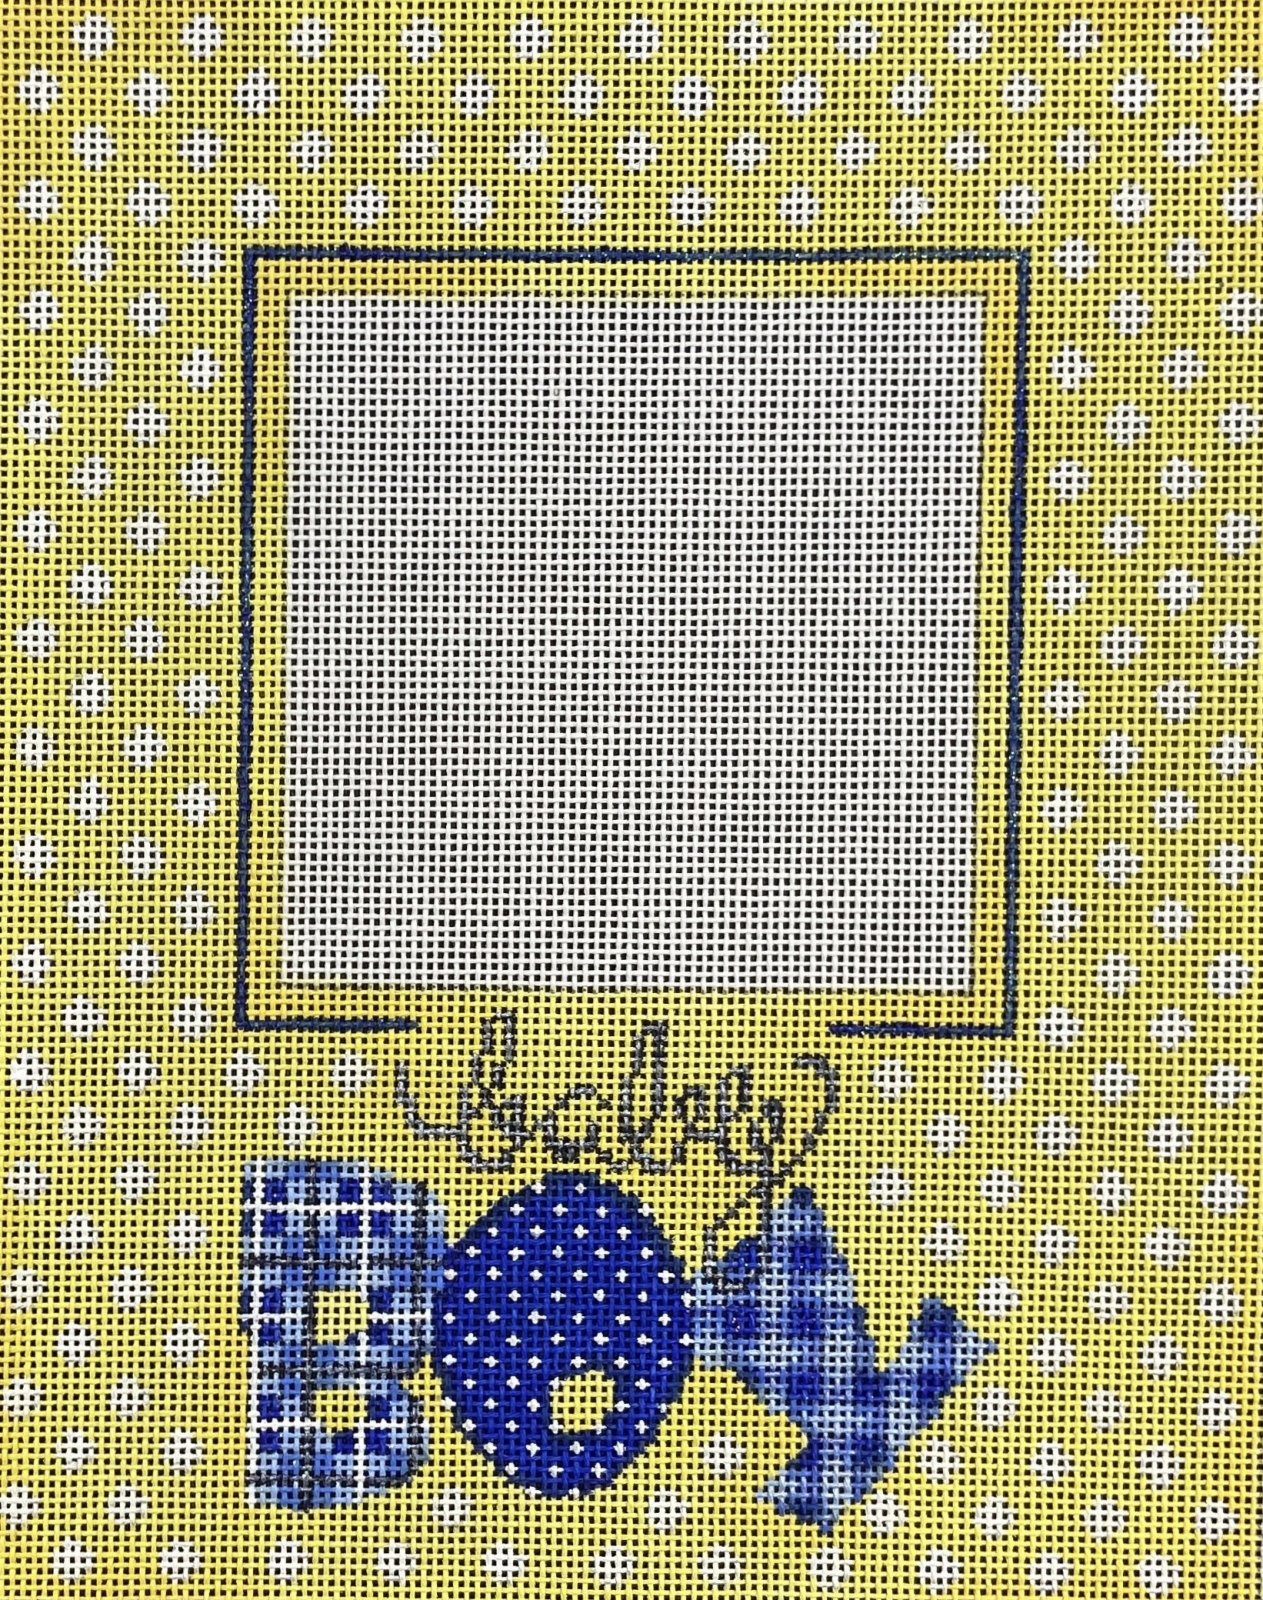 ATPF269 Frame Yellow and Blue with Dots Baby Boy Associated Talents